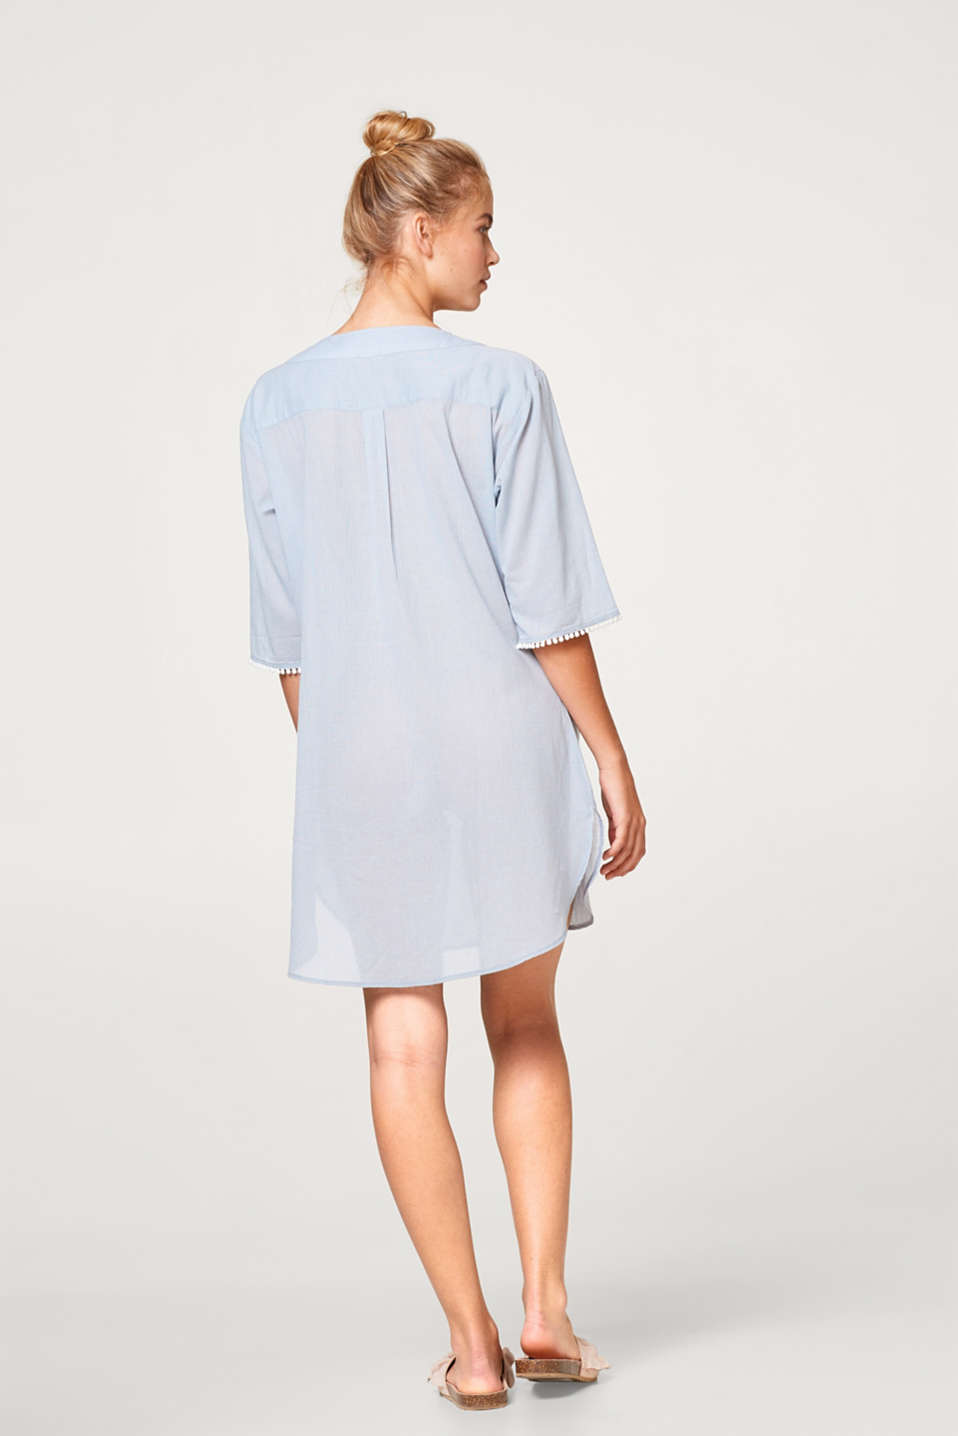 Lightweight tunic with embroidery, 100% cotton